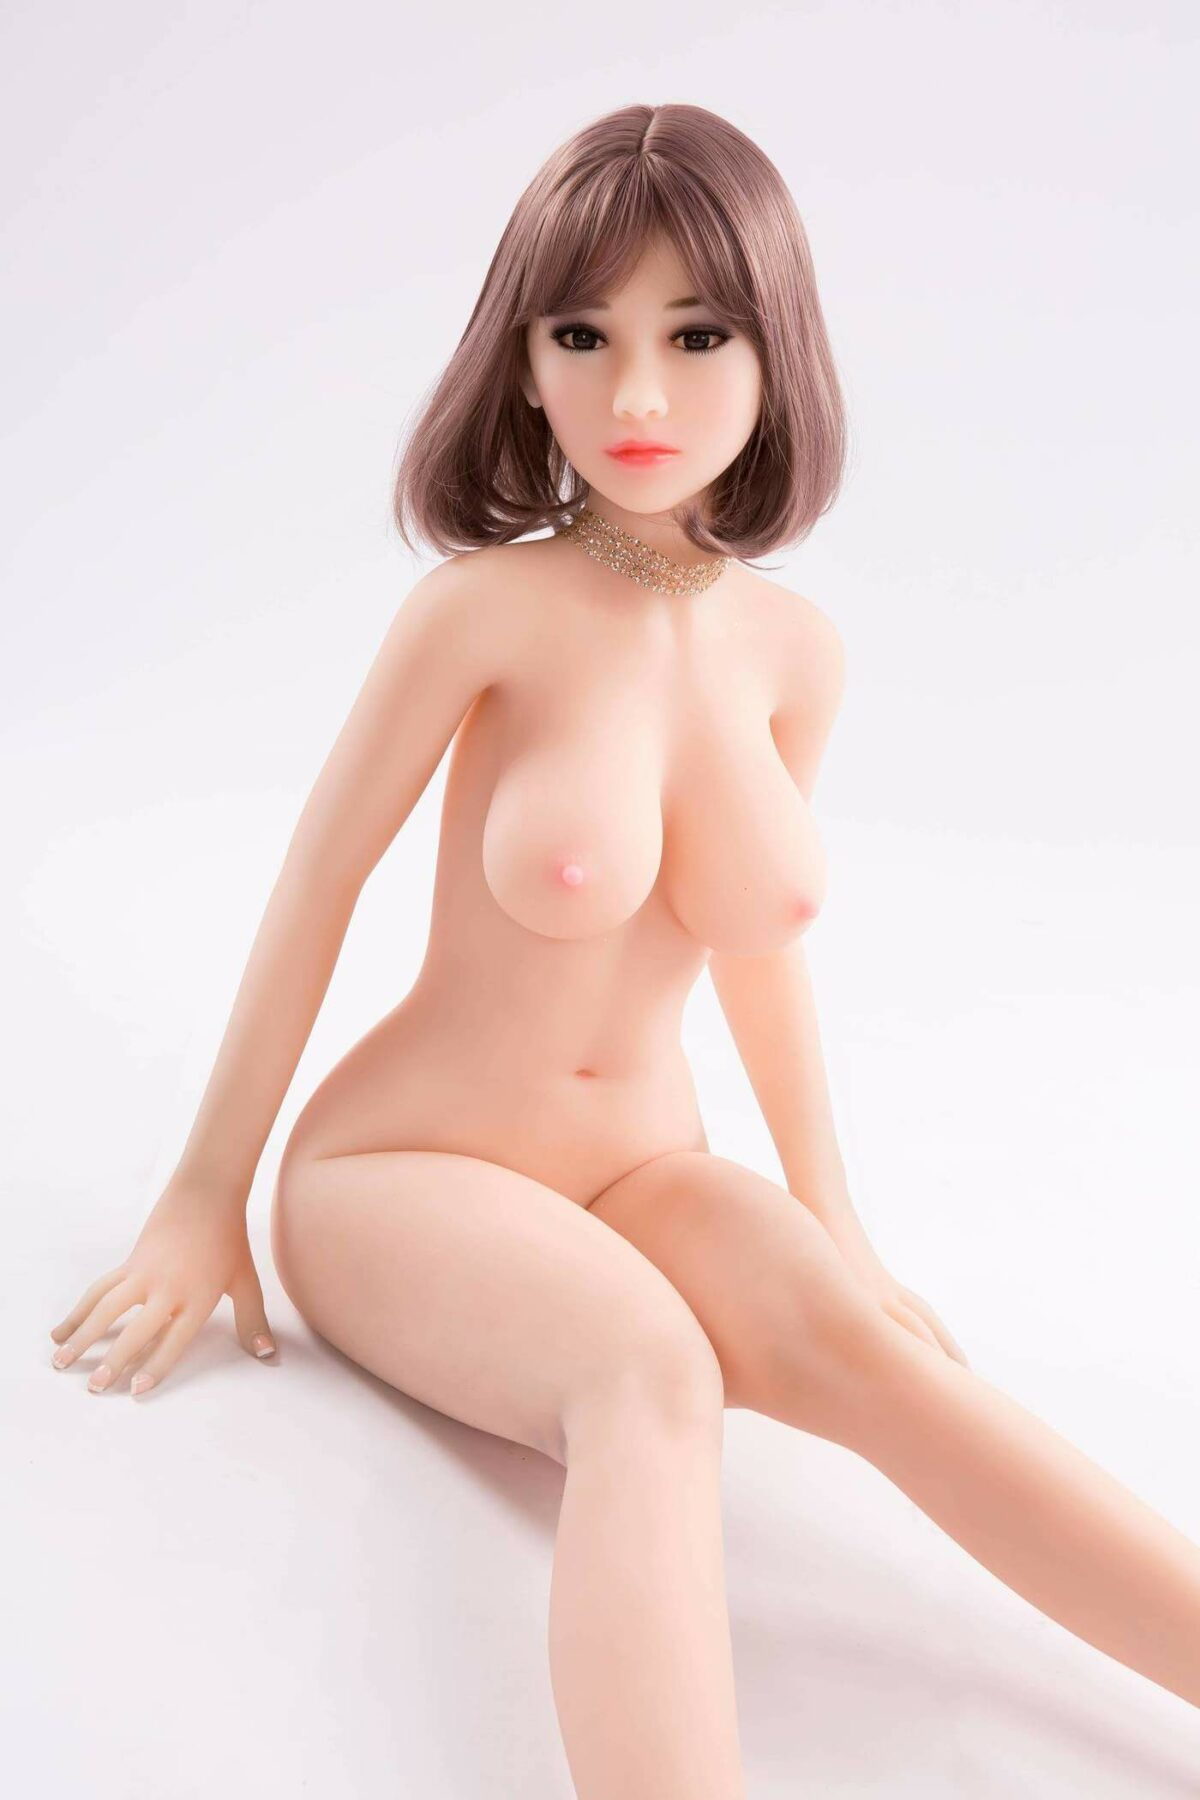 Real sexo adolescente Doll - Beryl